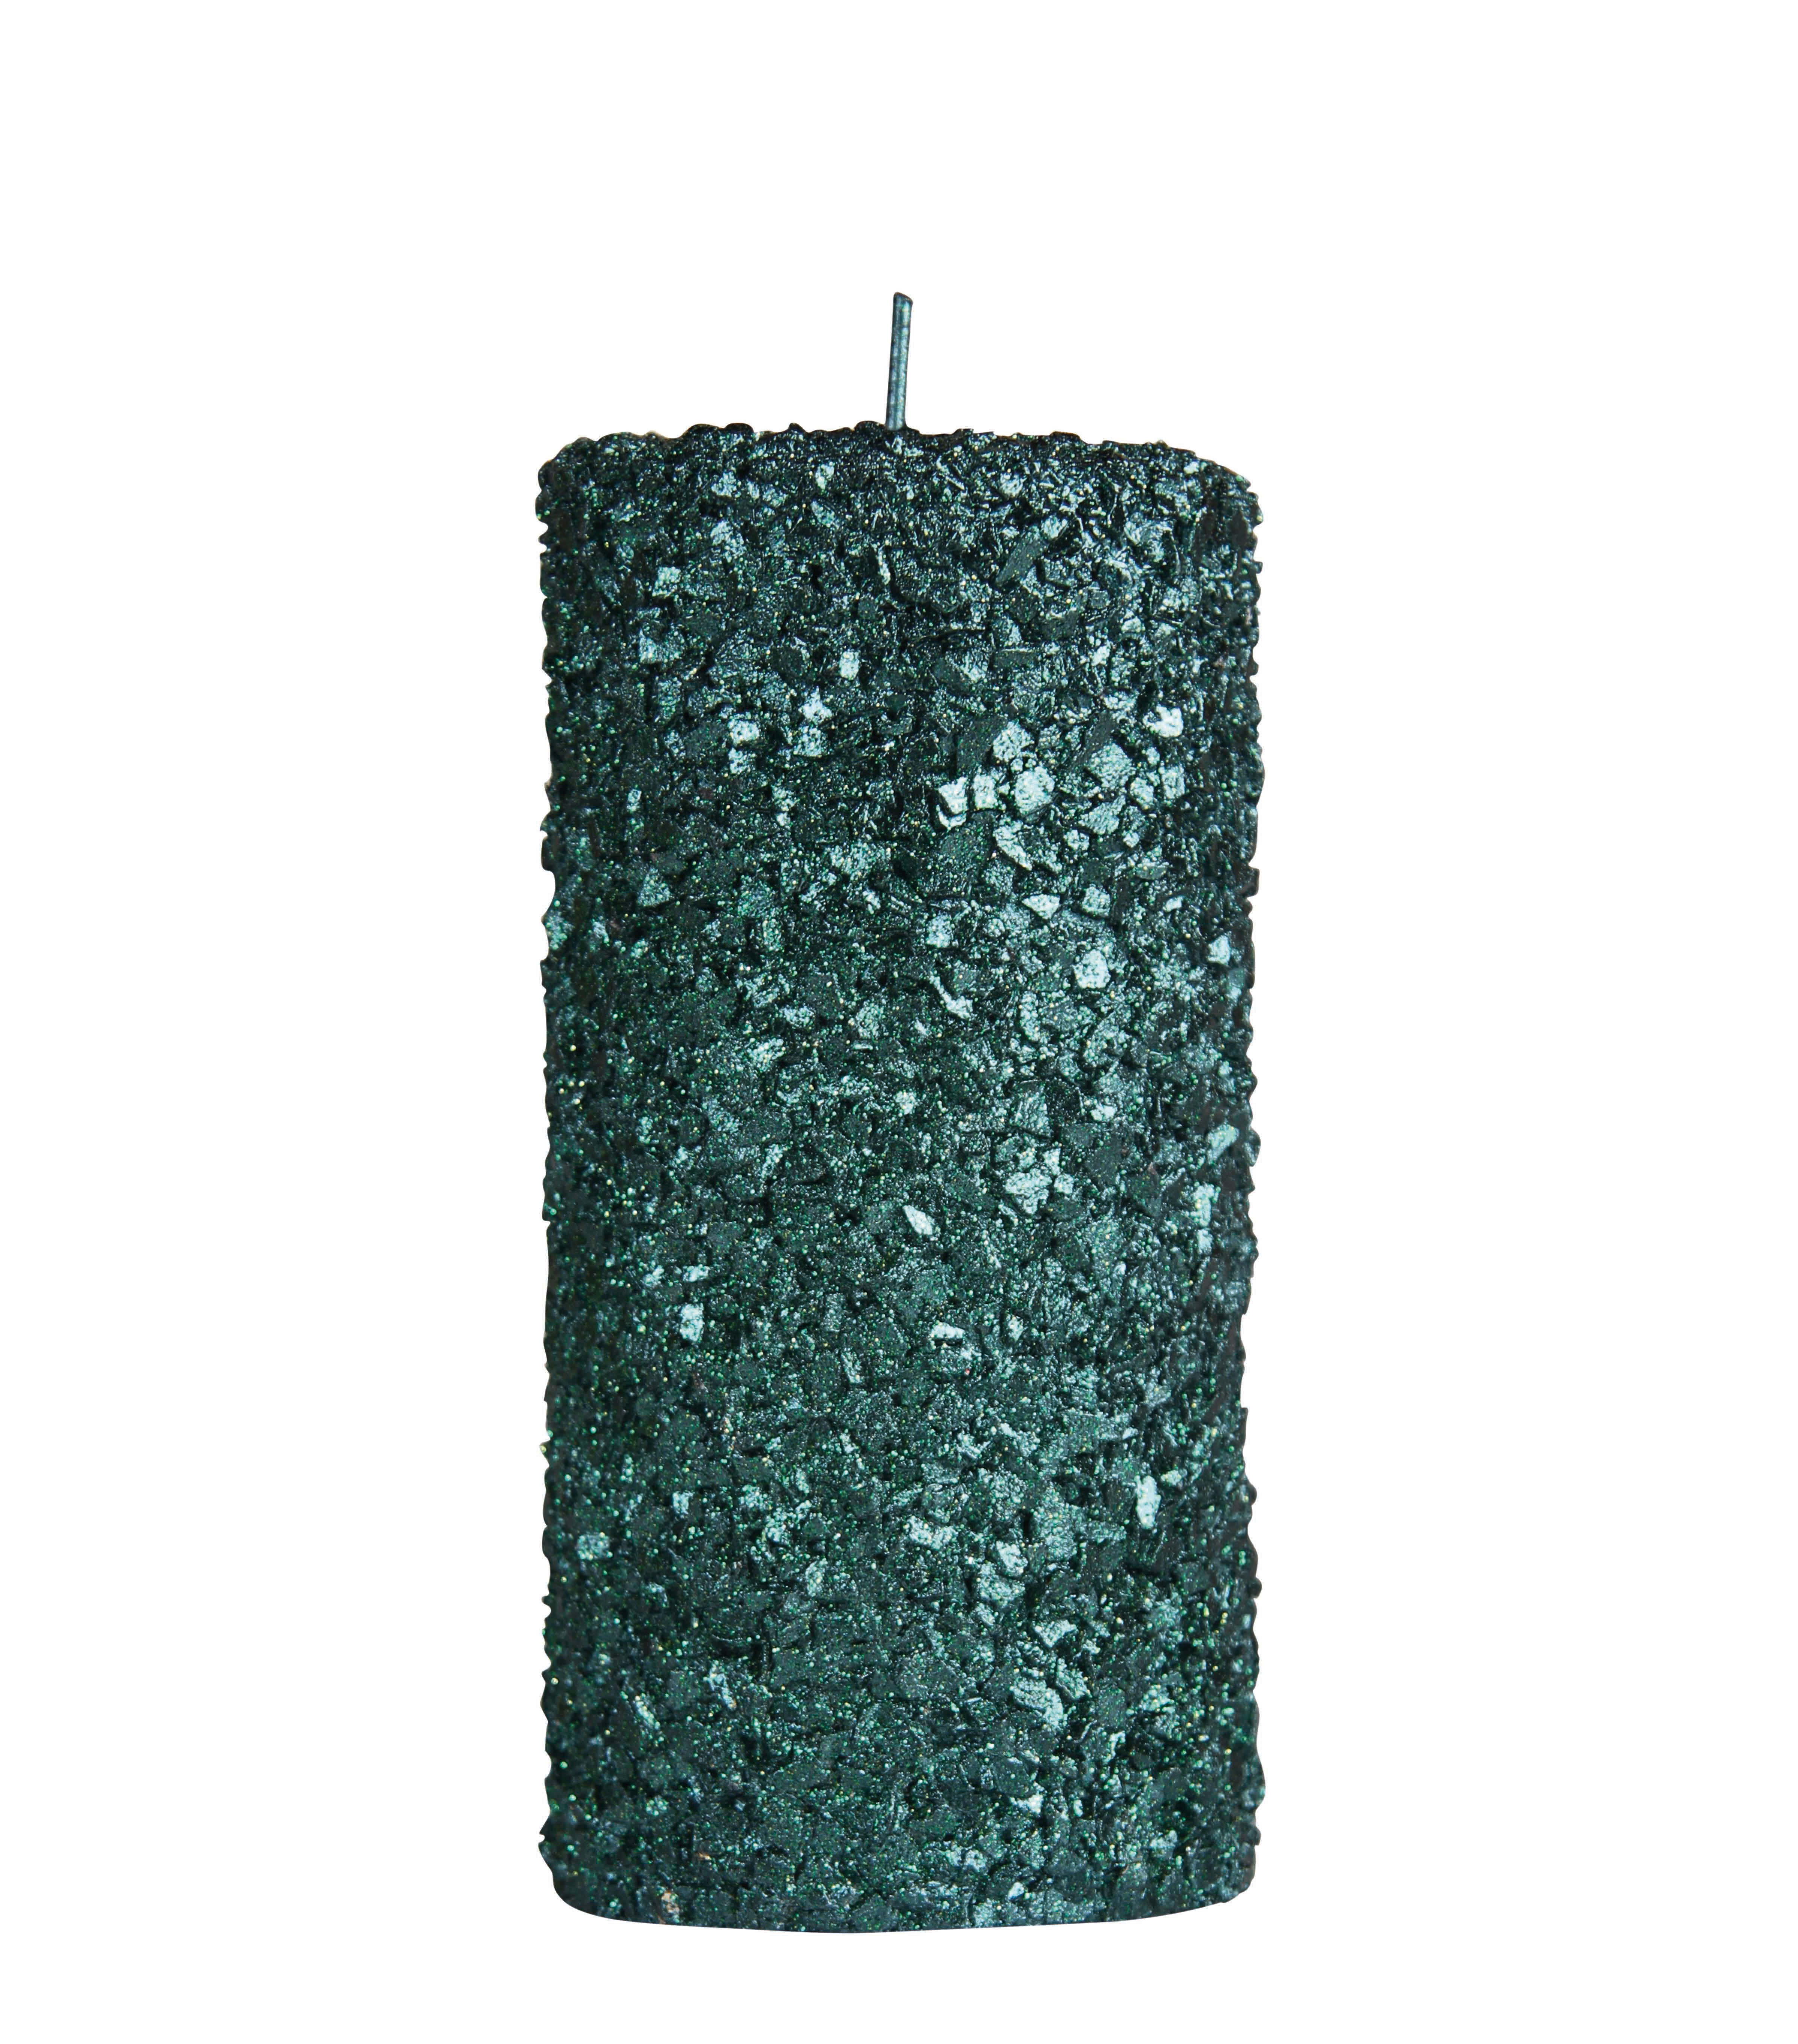 Decoration - Candles & Candle Holders - Pillar Candle - / Large - H 15 cm by & klevering - Sequinned green - Wax